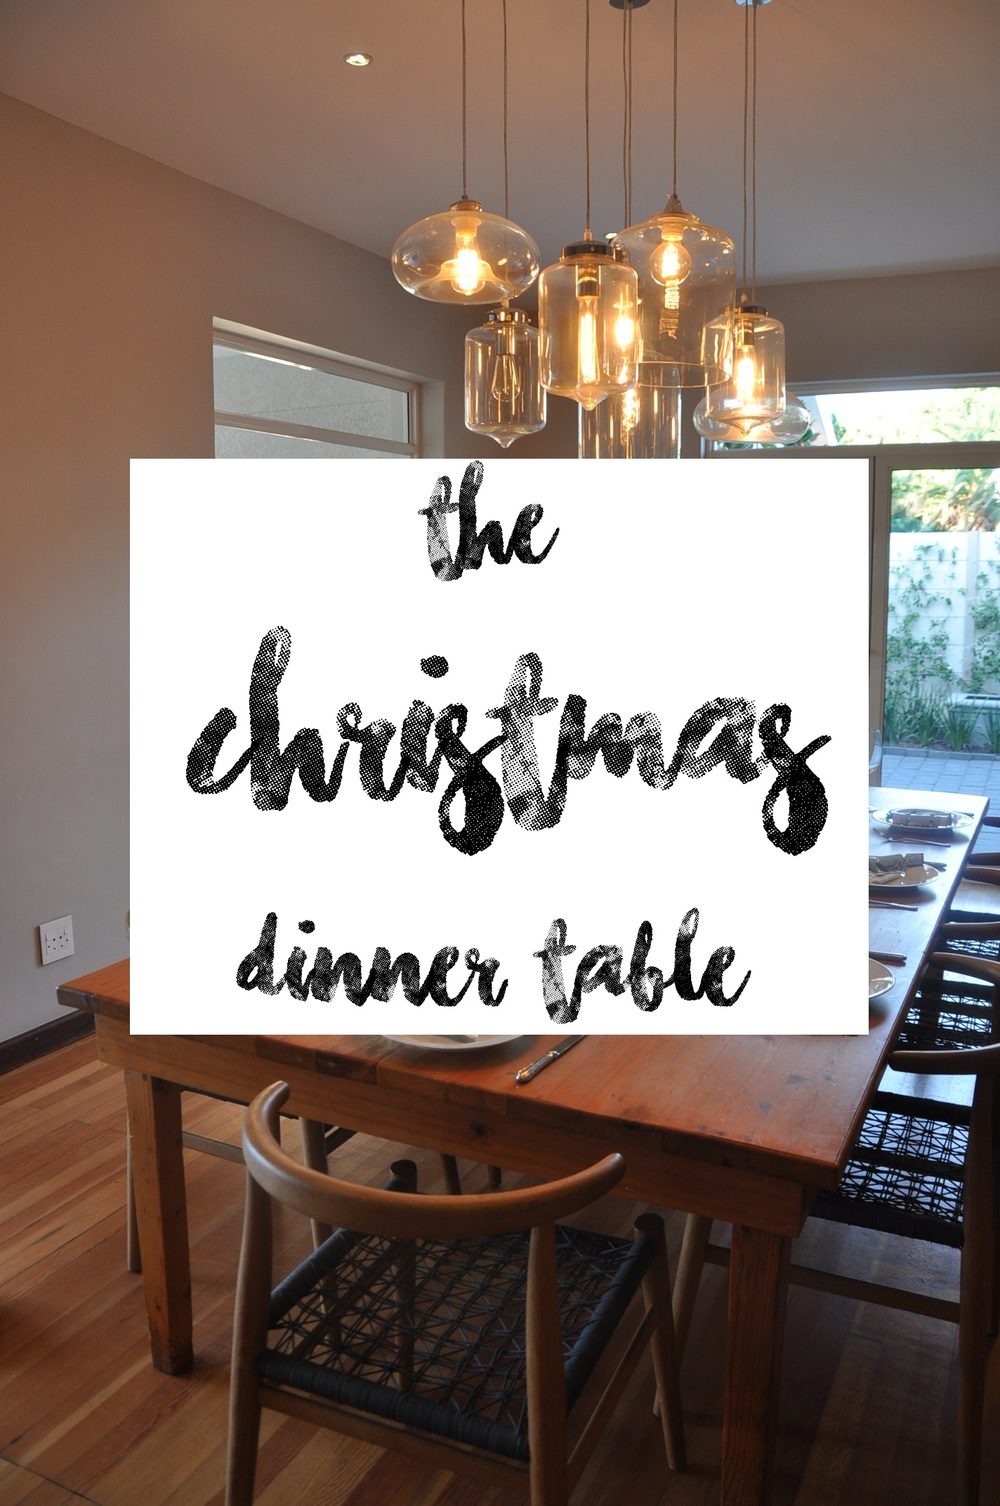 Decorating the Christmas Dinner Table - How to lay a simple, minimalist and festive table setting. A Lovely Space   alovelyspace.com